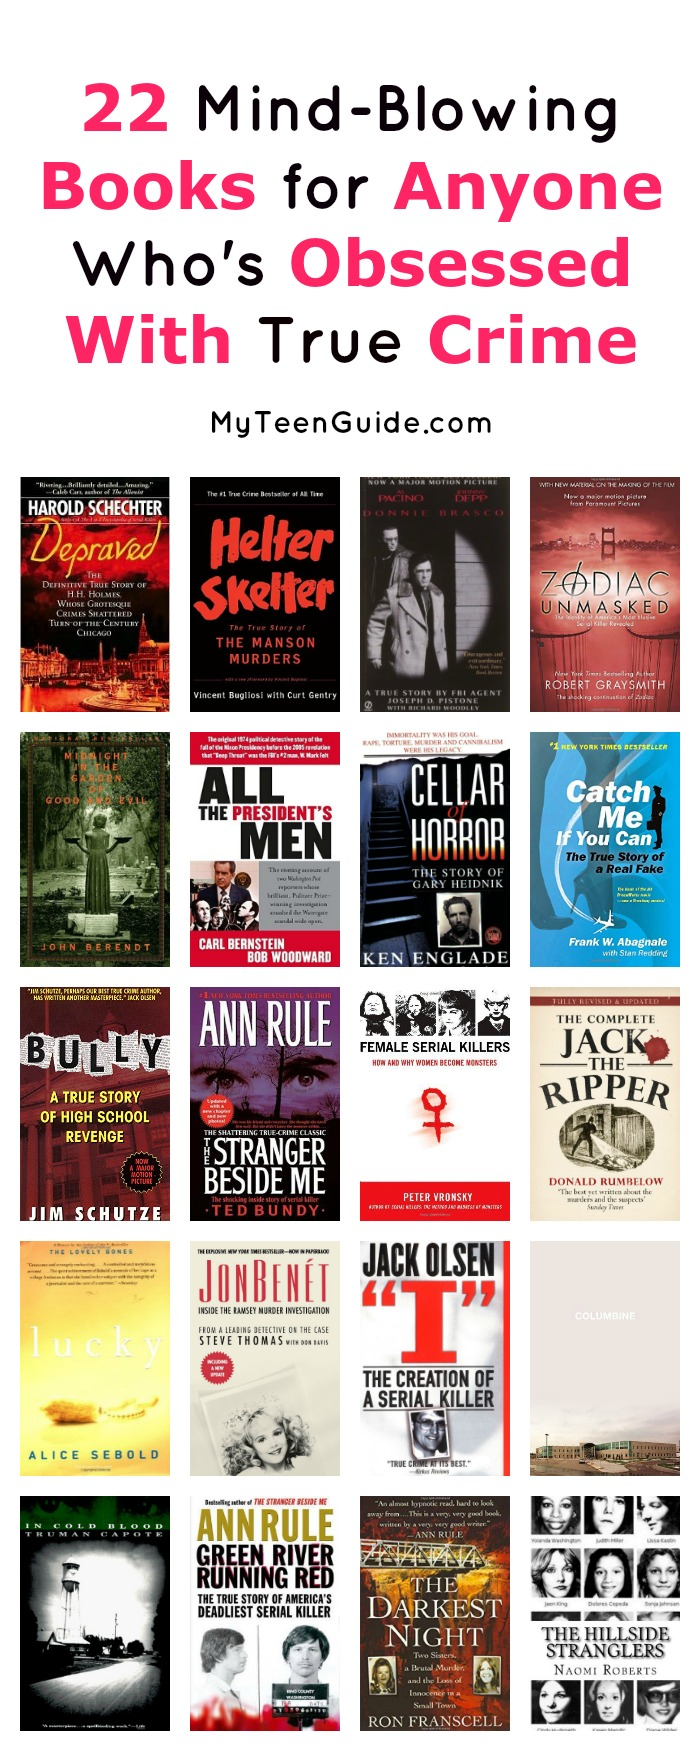 Fancy yourself a master sleuth? Check out 22 mind-blowing books for anyone who is obsessed with true crime! They're a must-have for summer!